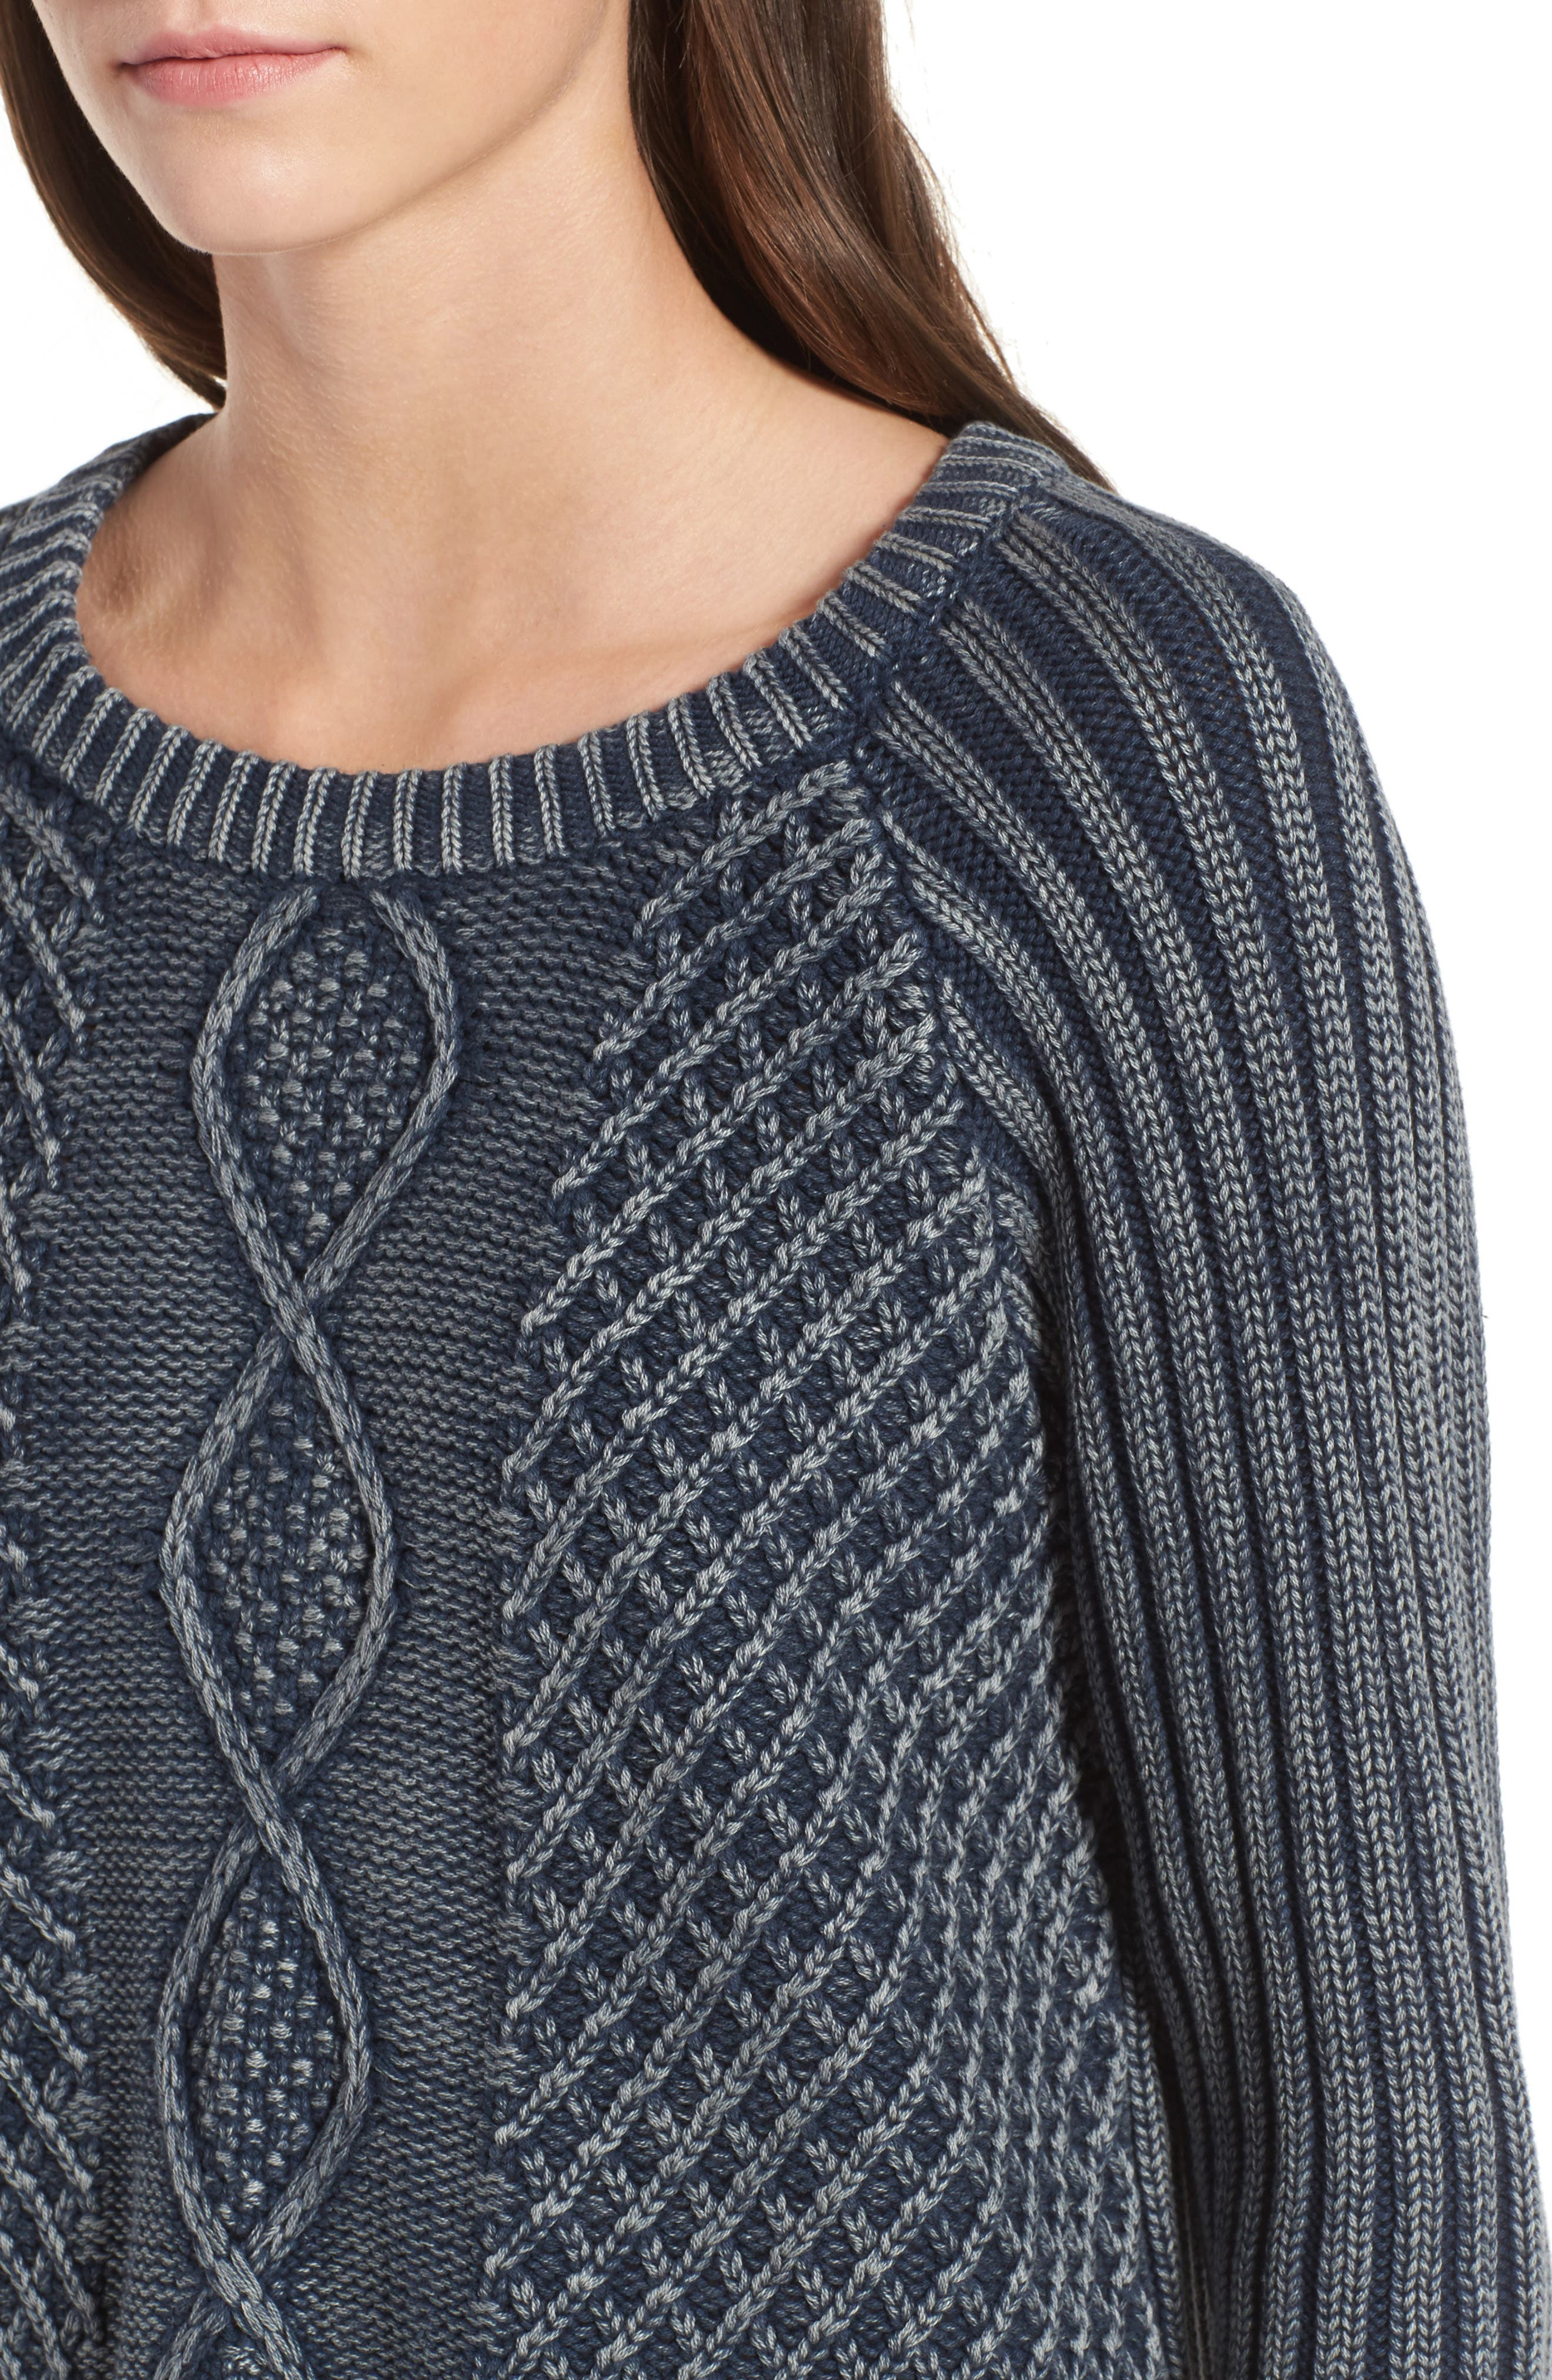 Gamenight Sweater,                             Alternate thumbnail 3, color,                             Federal Blue